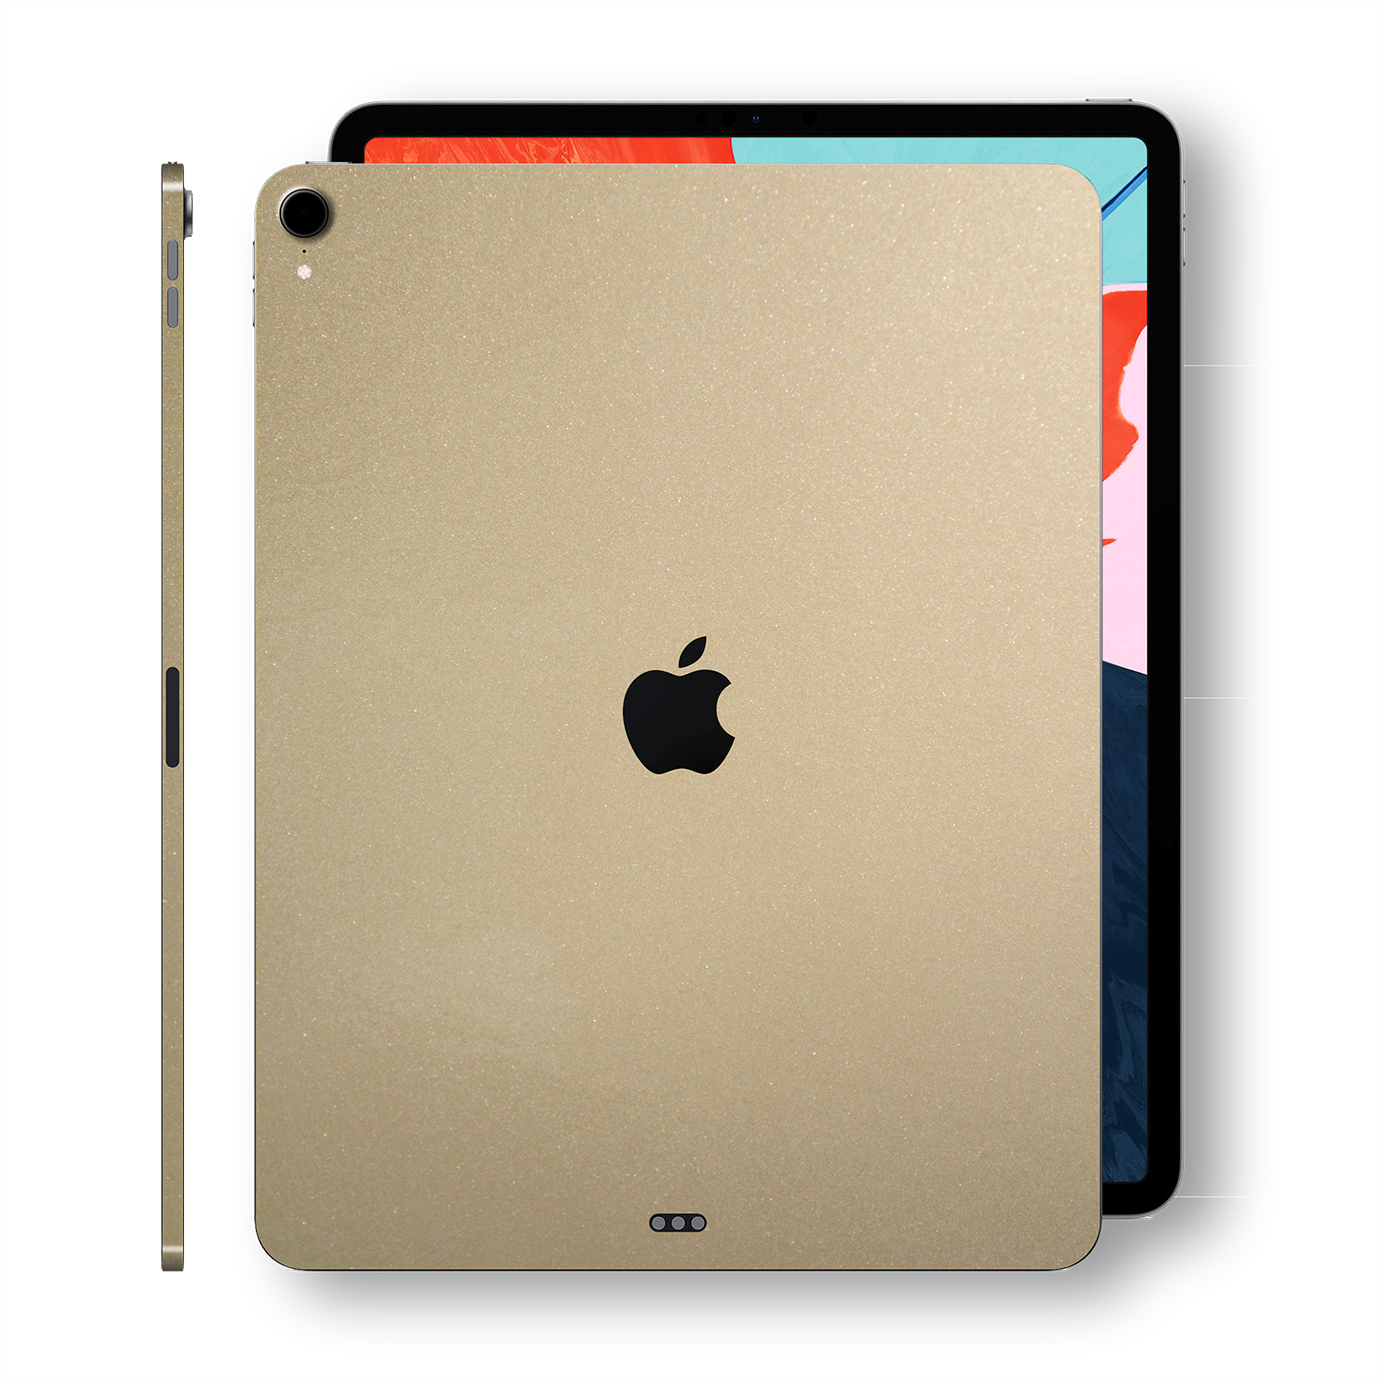 iPad PRO 12.9 inch 3rd Generation 2018 Glossy Champagne Gold Metallic Skin Wrap Sticker Decal Cover Protector by EasySkinz